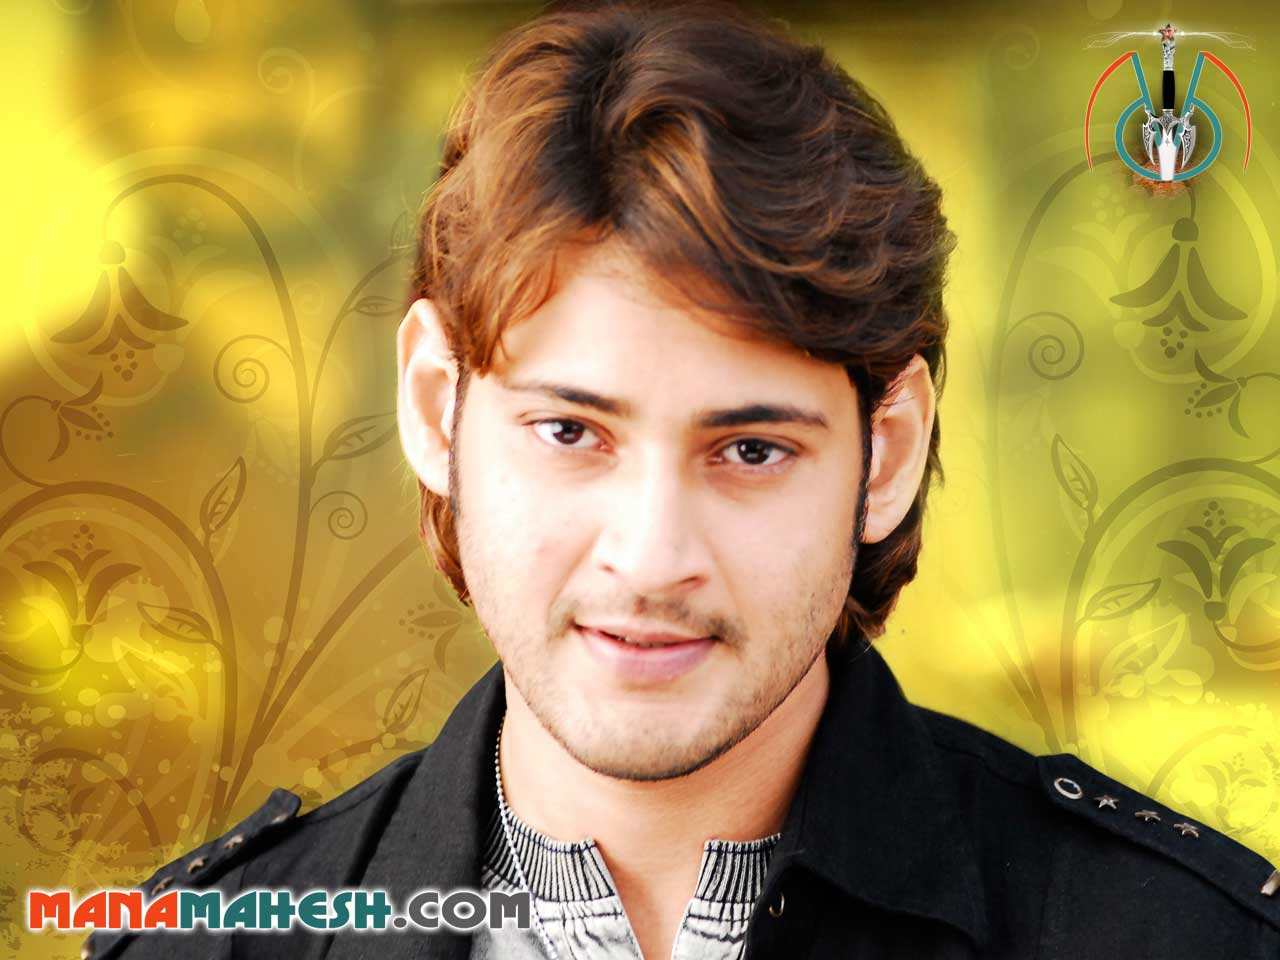 Mahesh babu venkatesh new movie songs free download : Samp